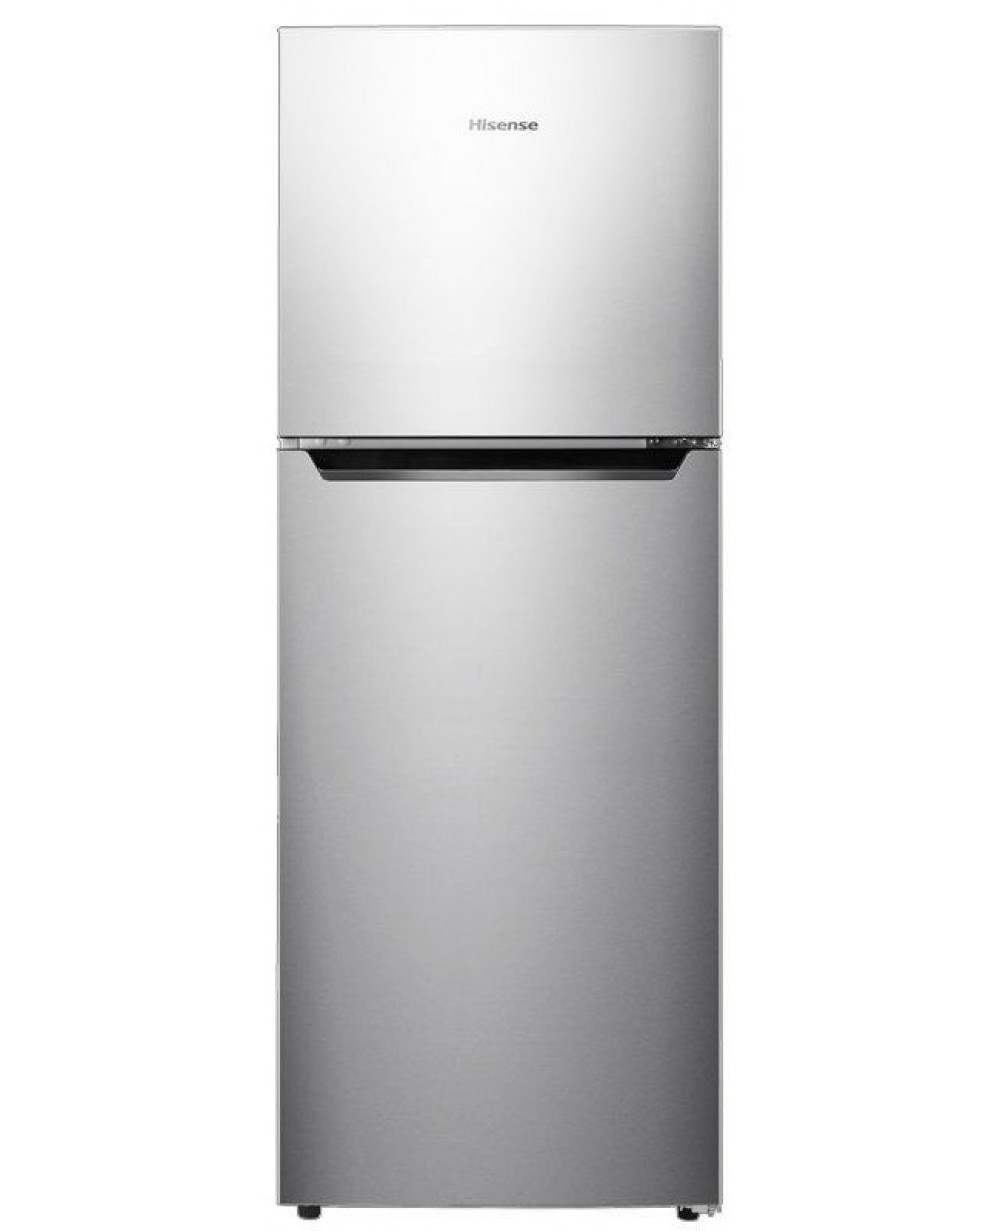 Hisense Refrigerator With Double Door 230 Ltrs RD-26DR4SA